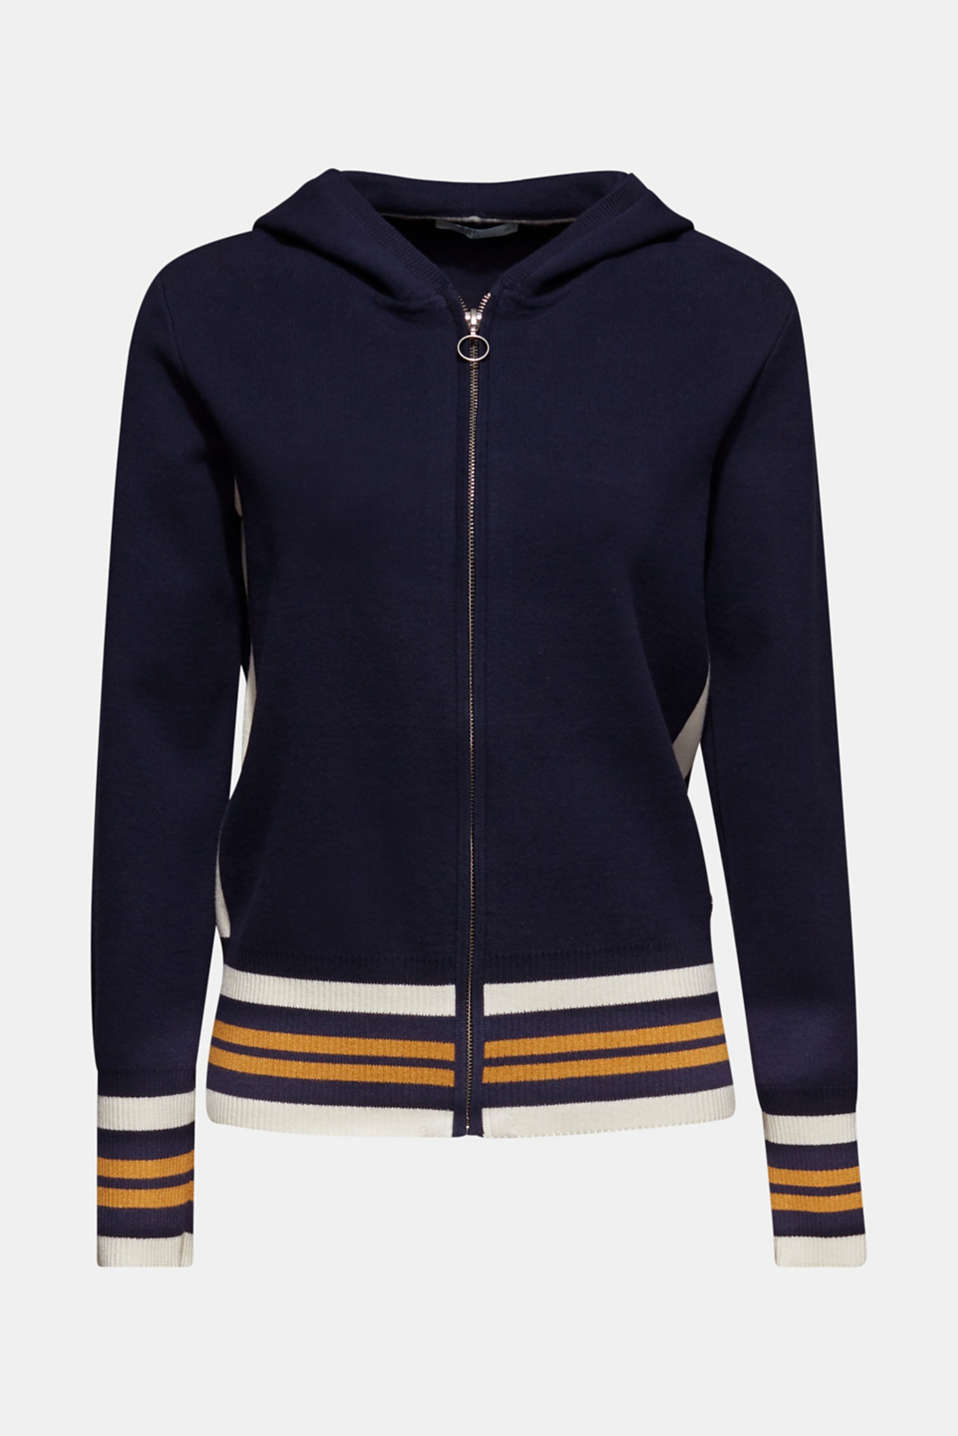 Knit cardigan with a hood and stripes, NAVY 3, detail image number 5